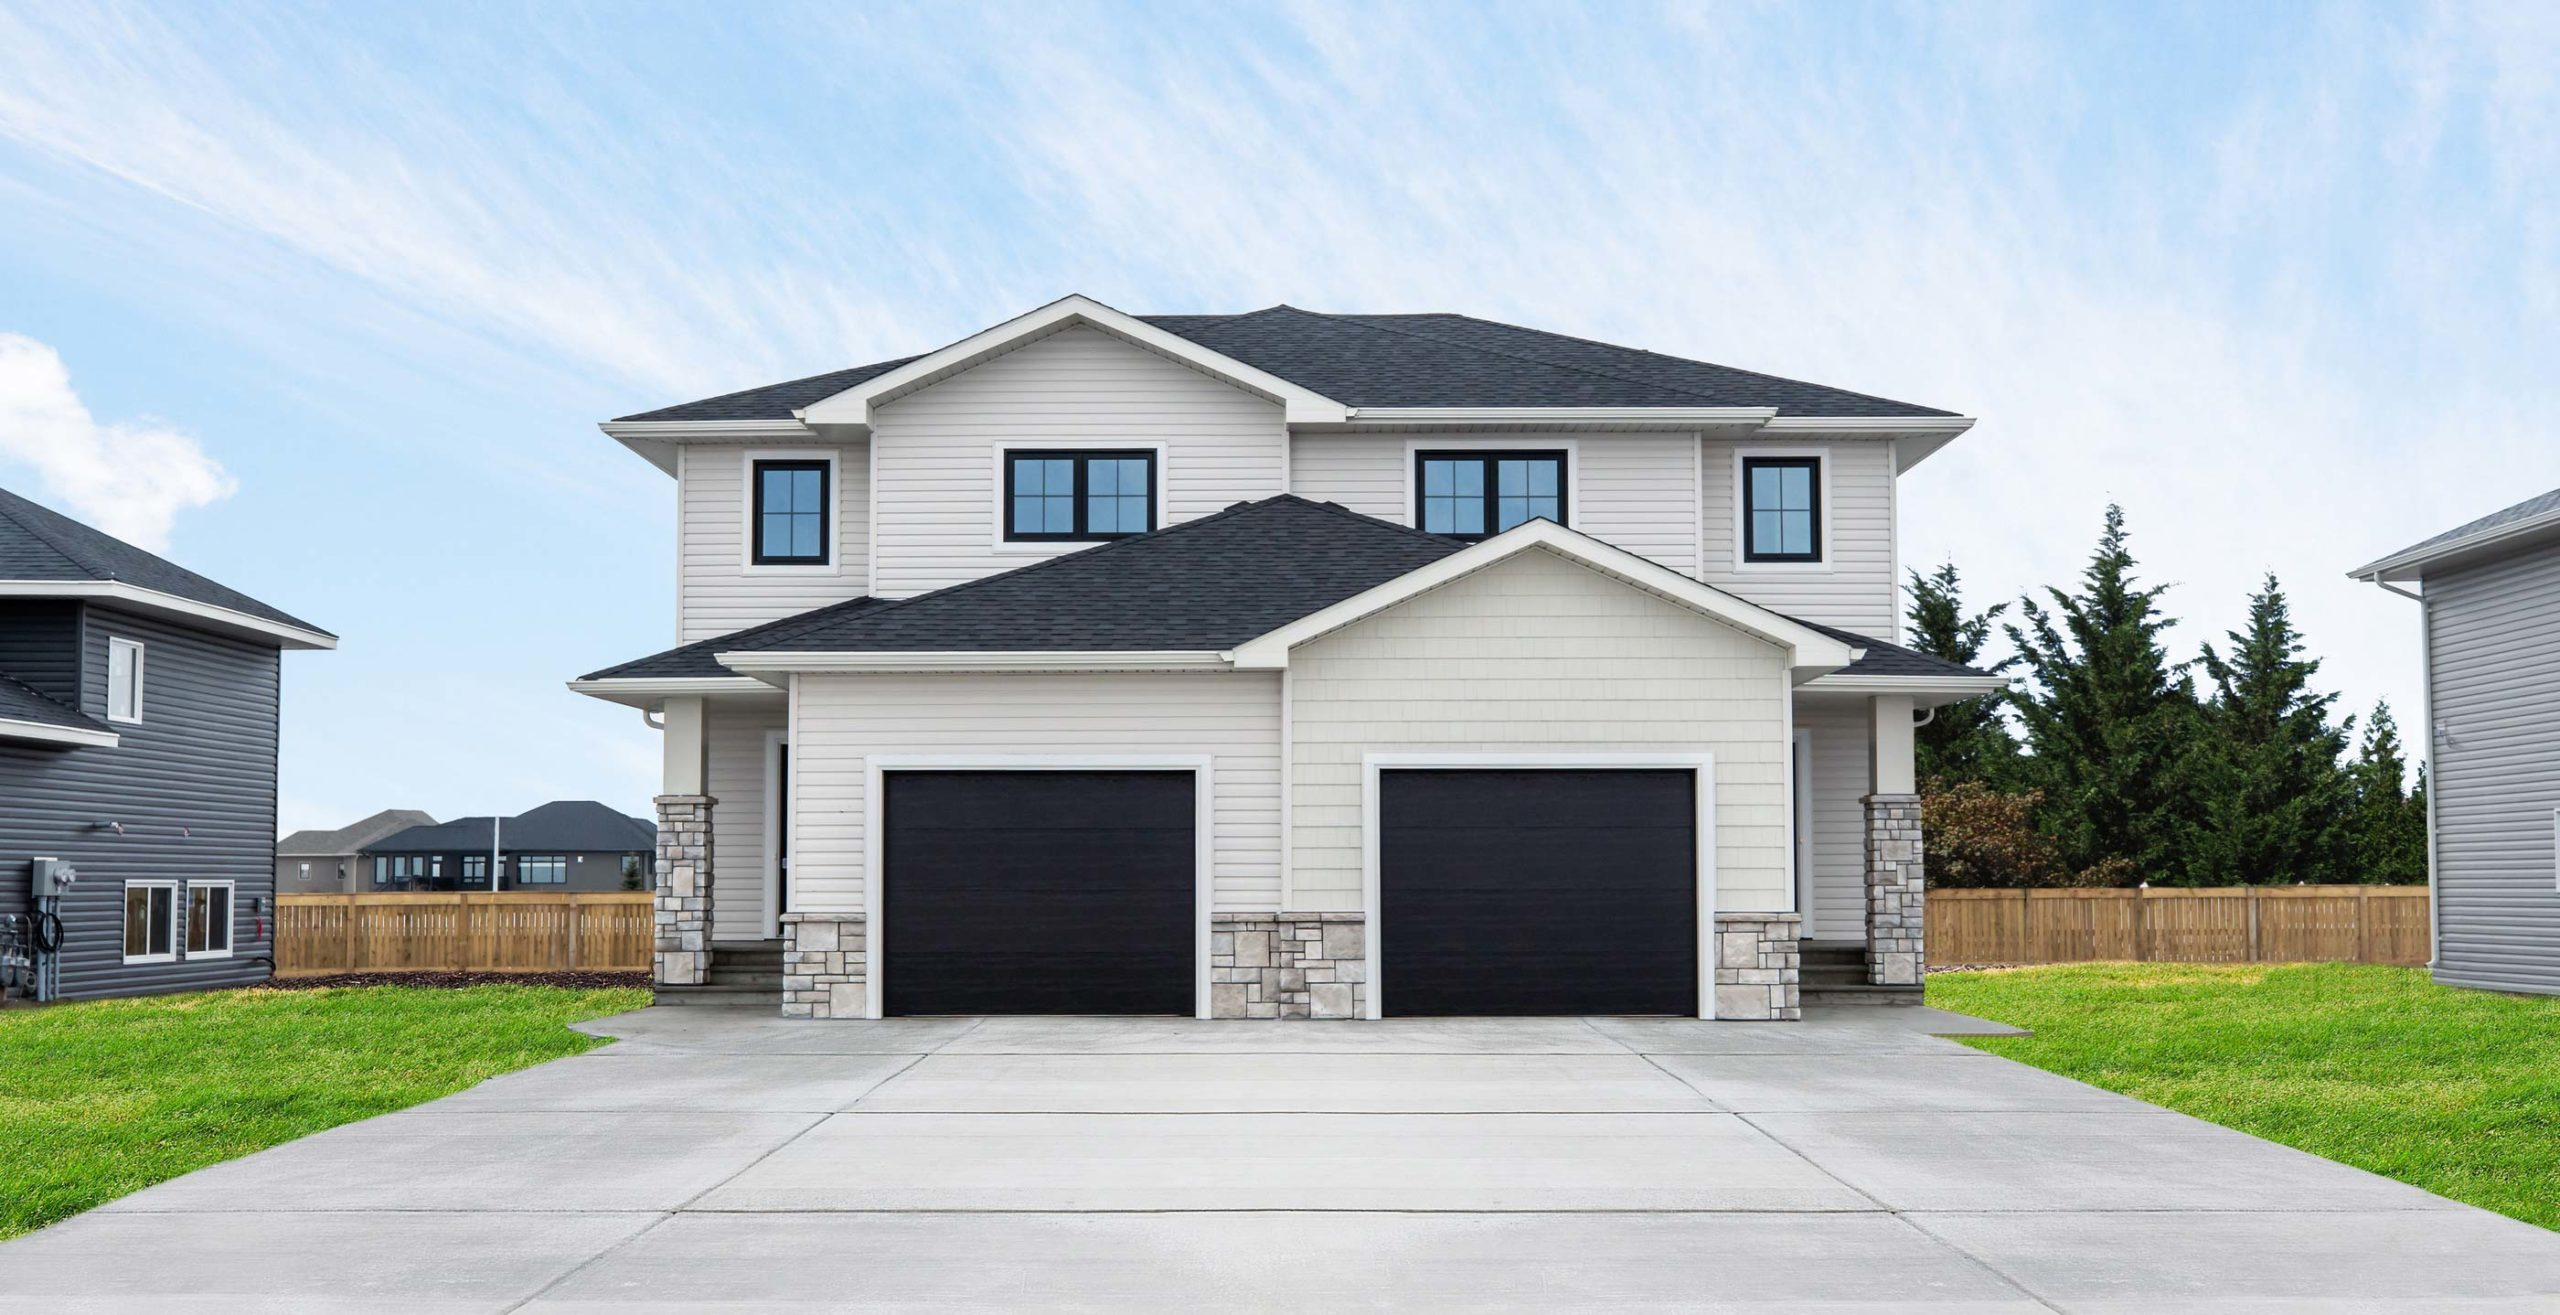 One of the available North Point Homes, two-story duplex with garages